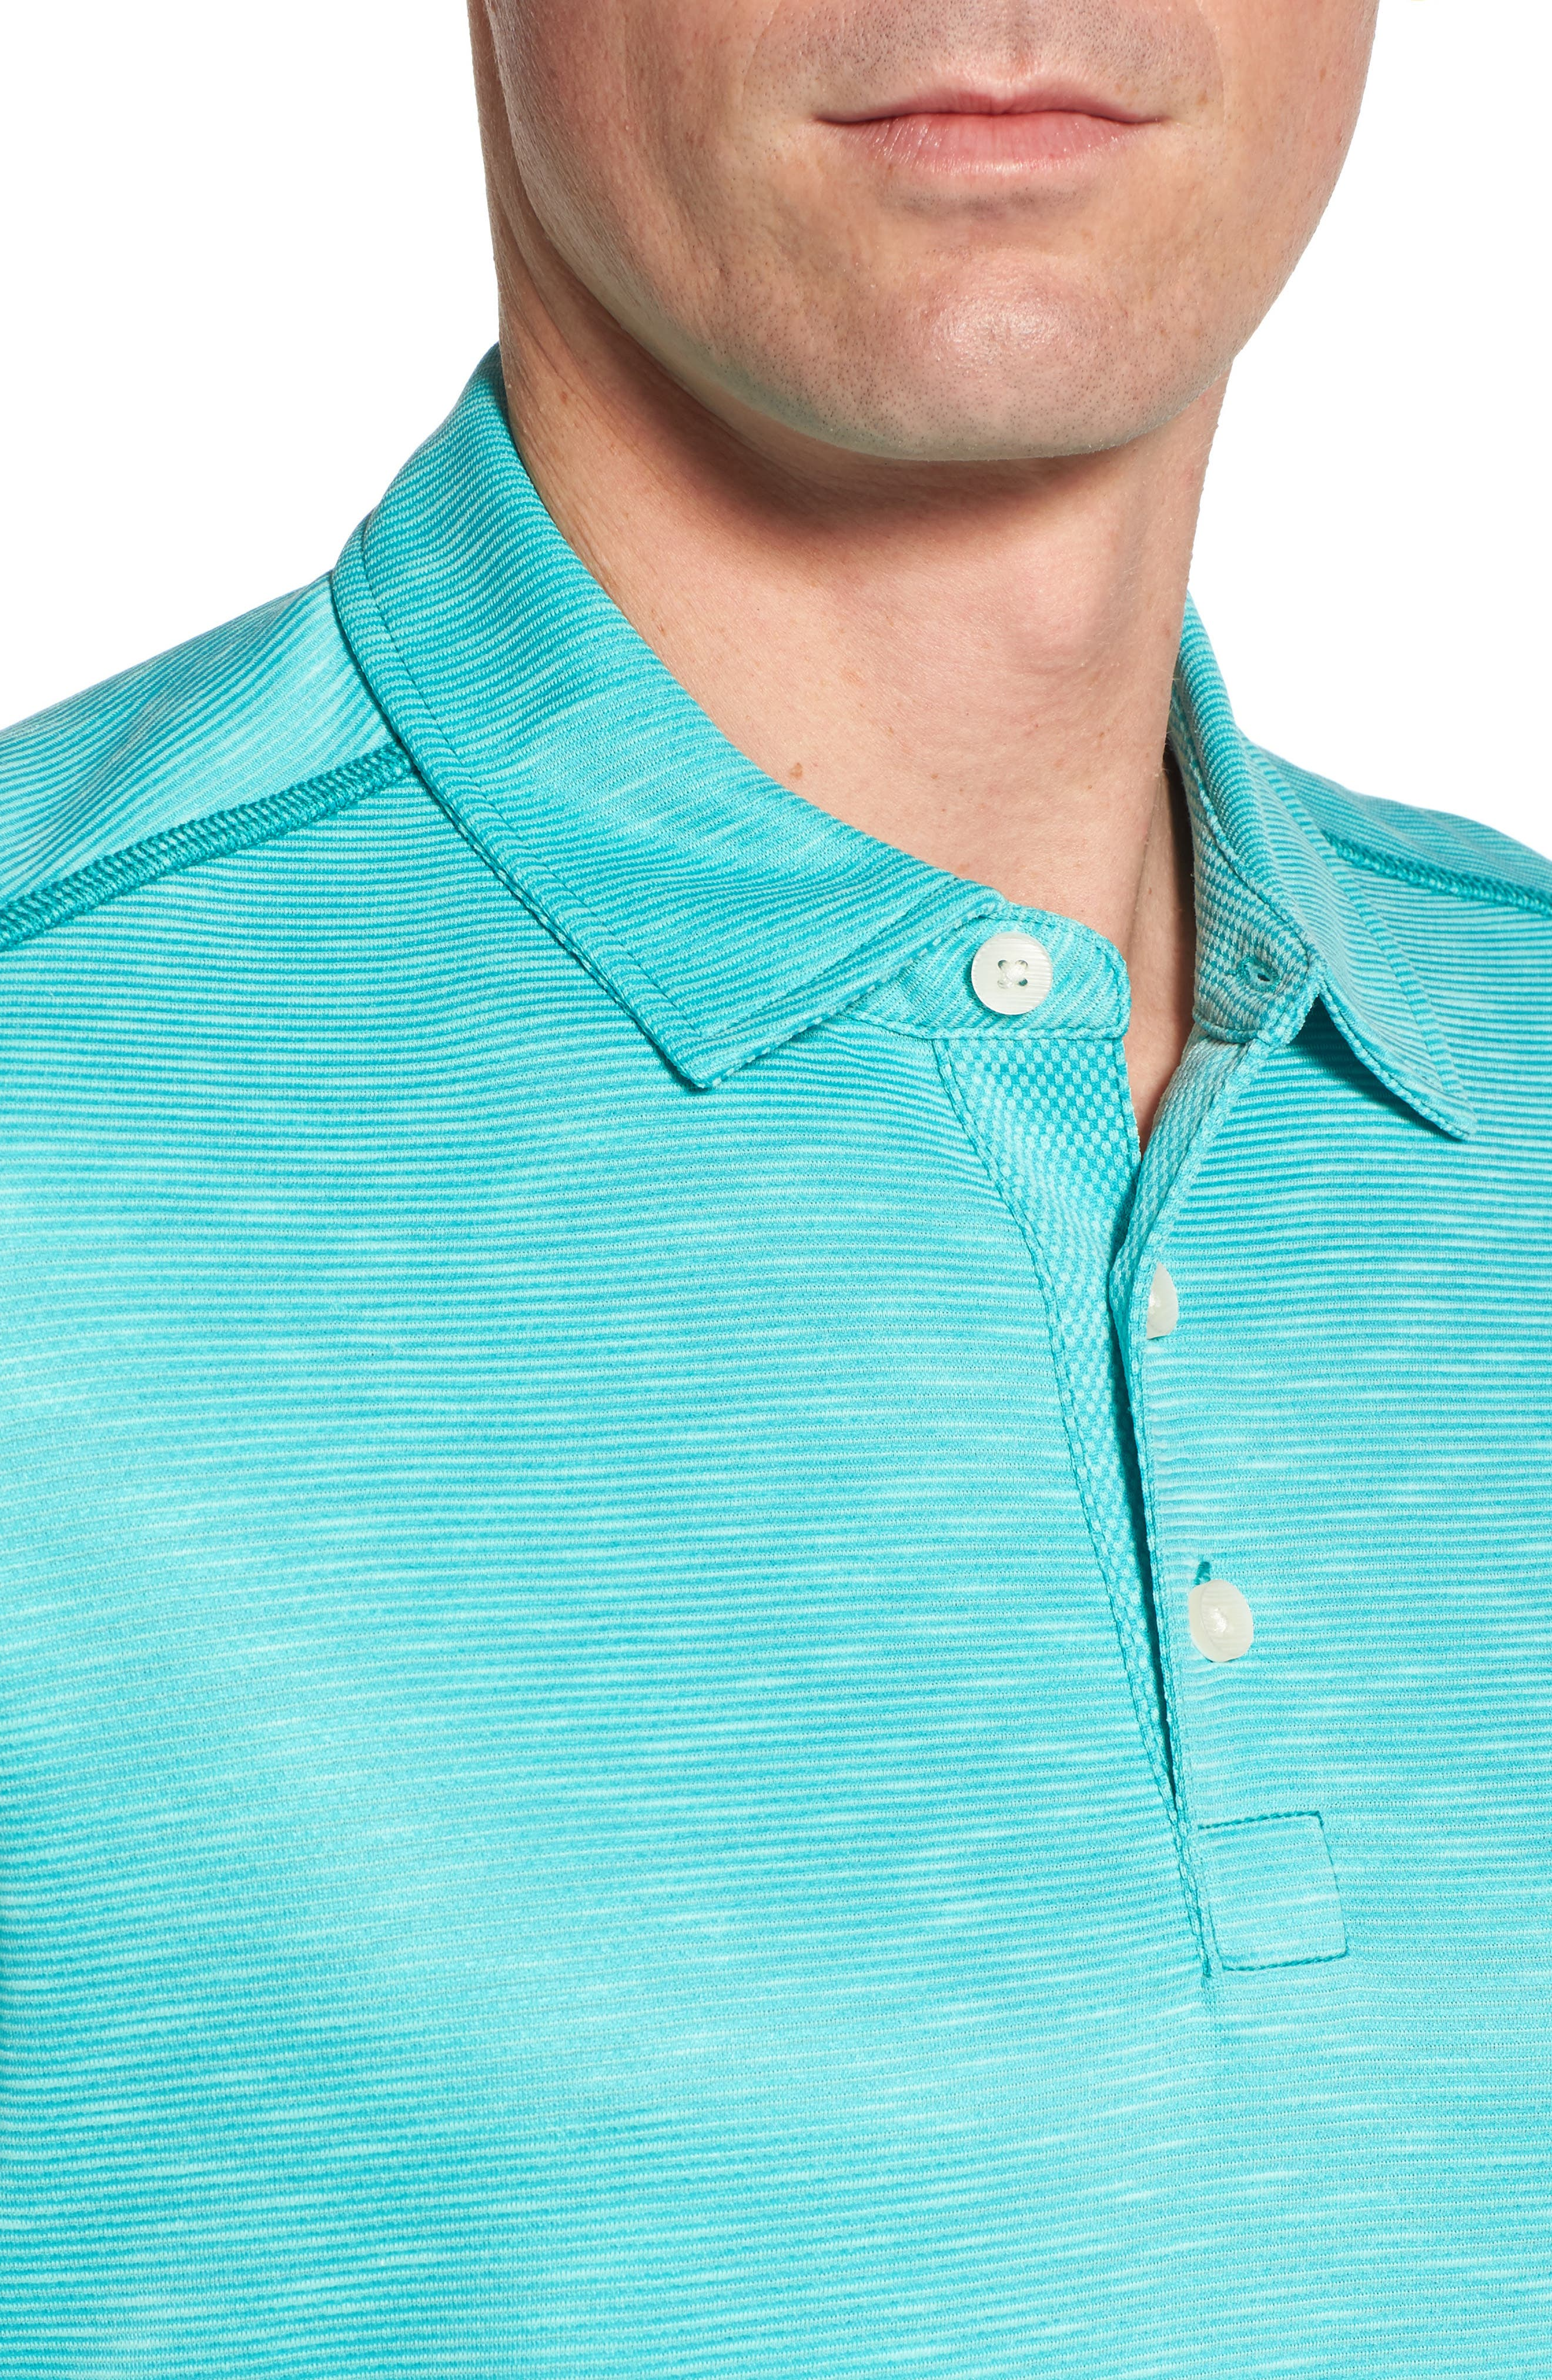 New Double Tempo Spectator Jersey Polo,                             Alternate thumbnail 4, color,                             Mint Mojito